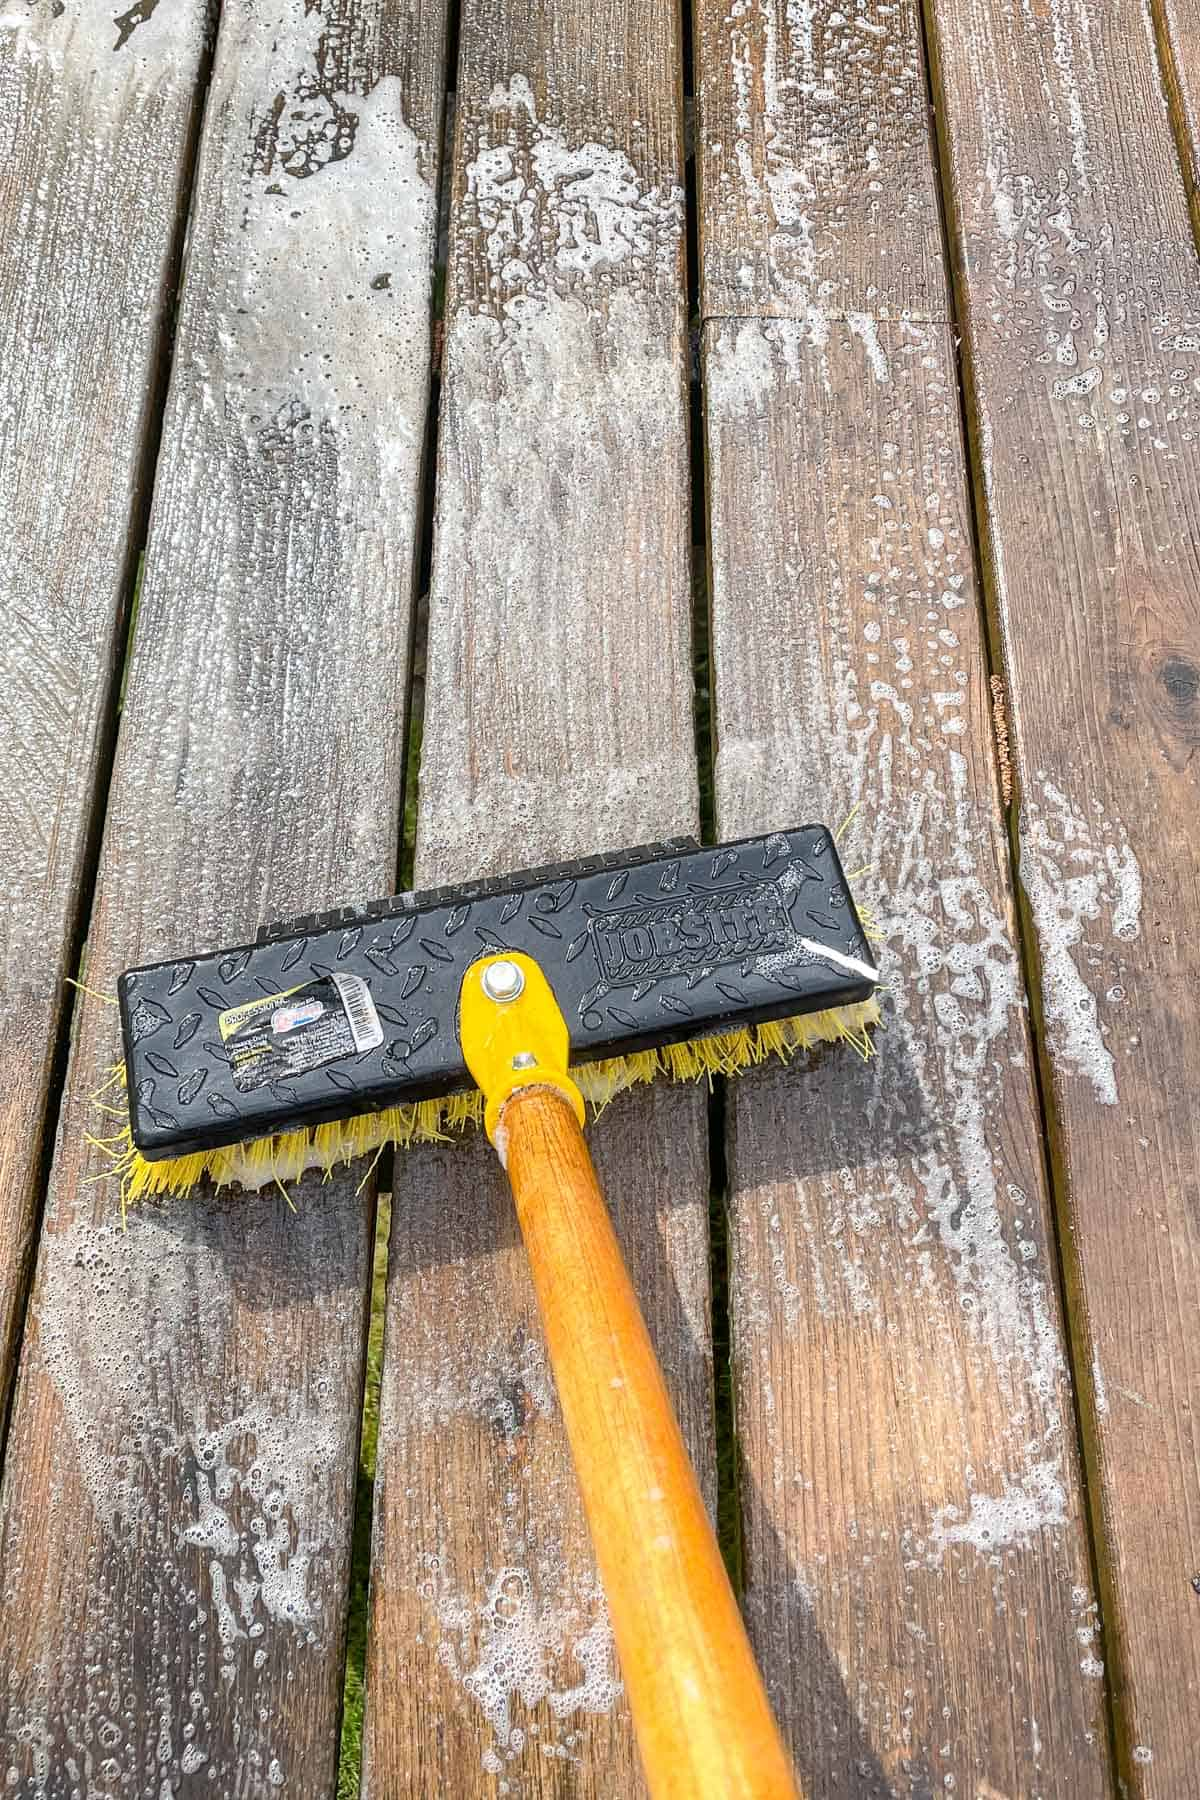 applying deck cleaner to dirty deck with a scrub brush